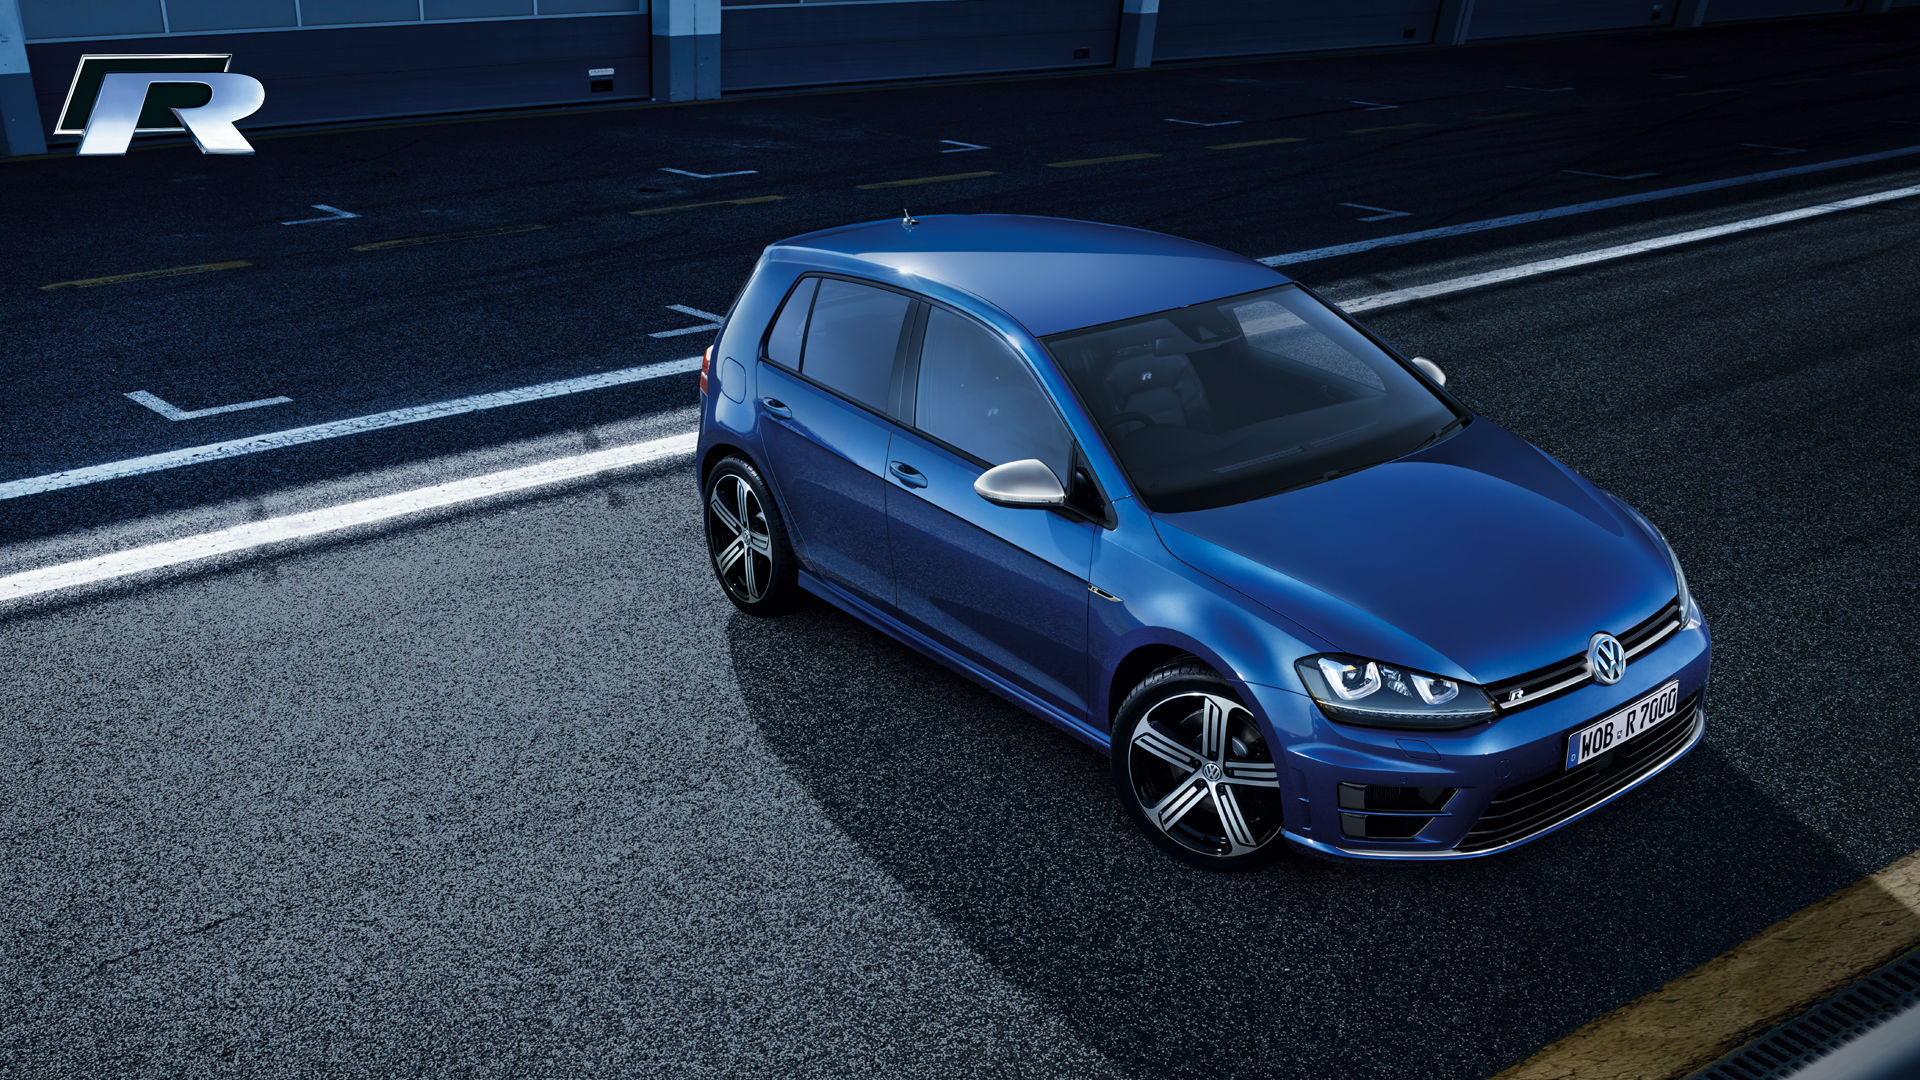 2015 Volkswagen Golf R Sport Car Wallpaper   HD 1920x1080